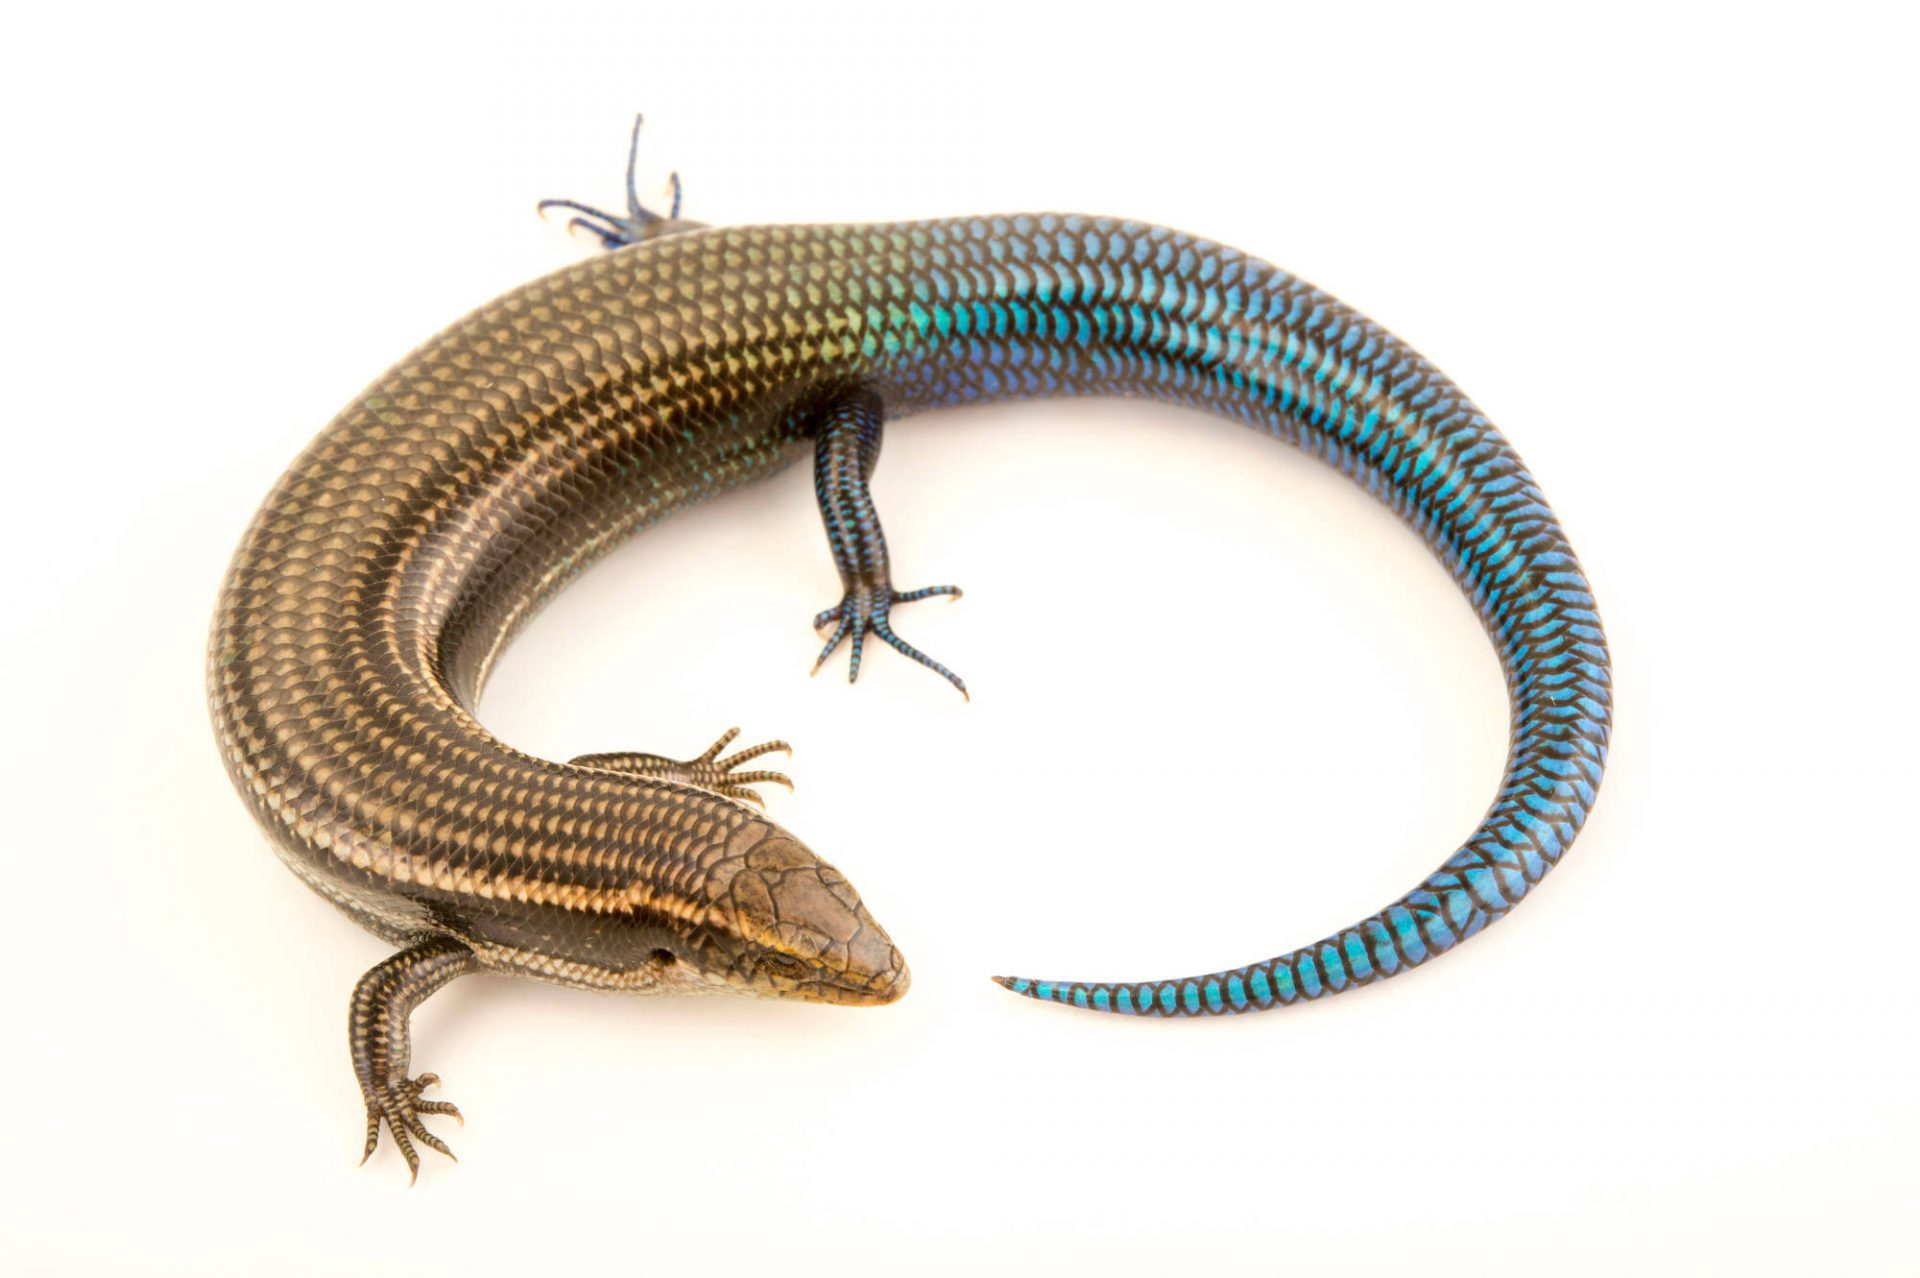 Photo: A male Southern Gran Canaria skink, Chalcides sexlineatus sexlineatus, at the Plzen Zoo.